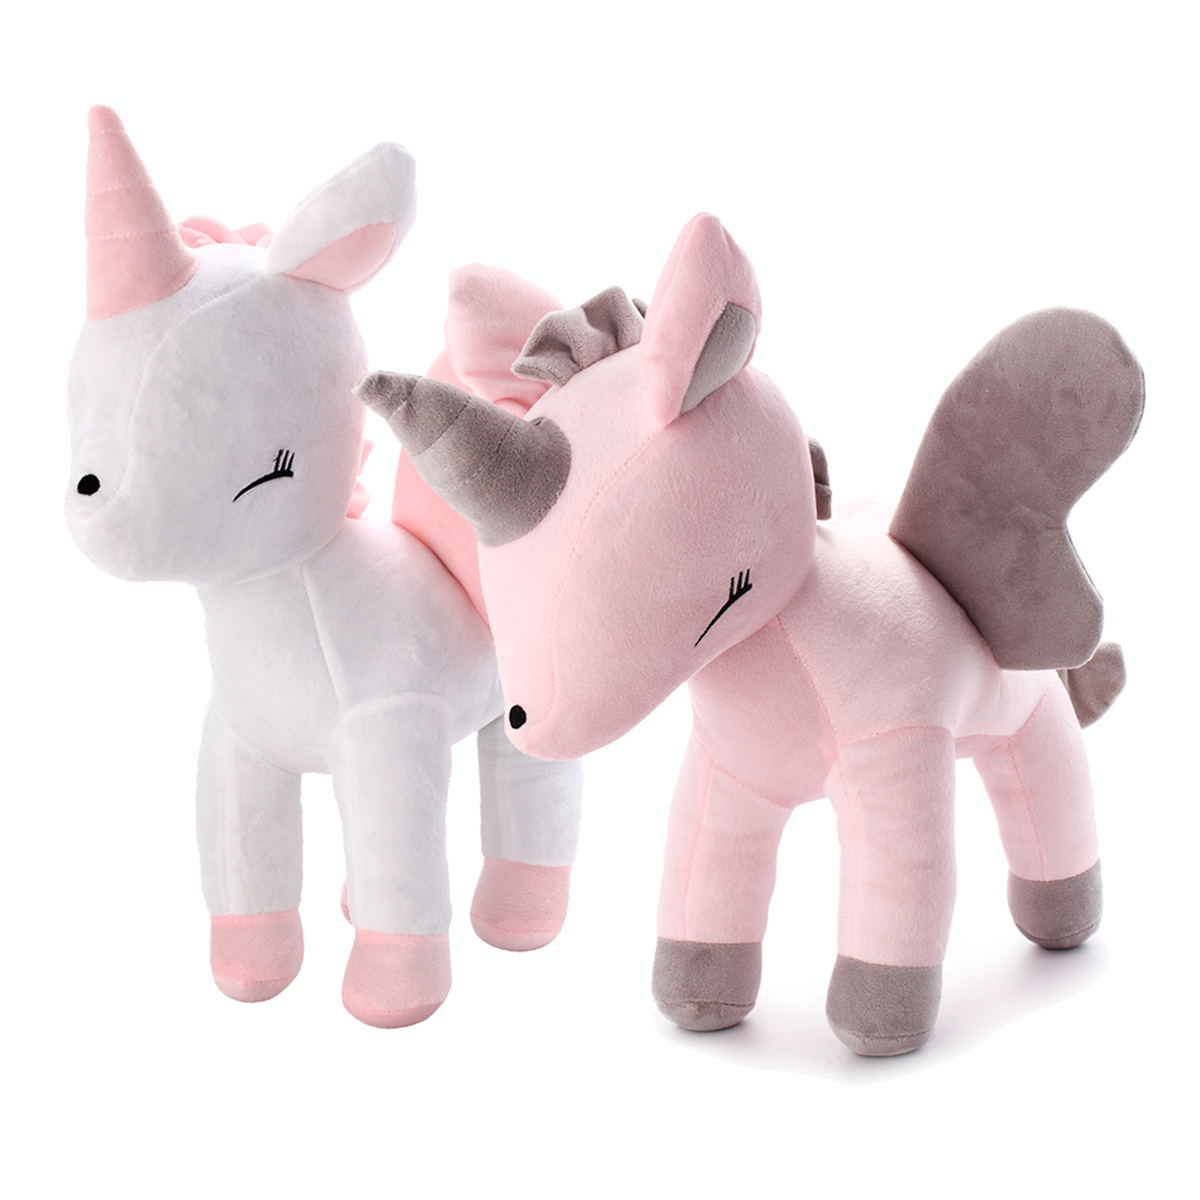 16 Inches Soft Giant Unicorn Stuffed Plush Toy Animal Doll Children Gifts Photo Props Gift